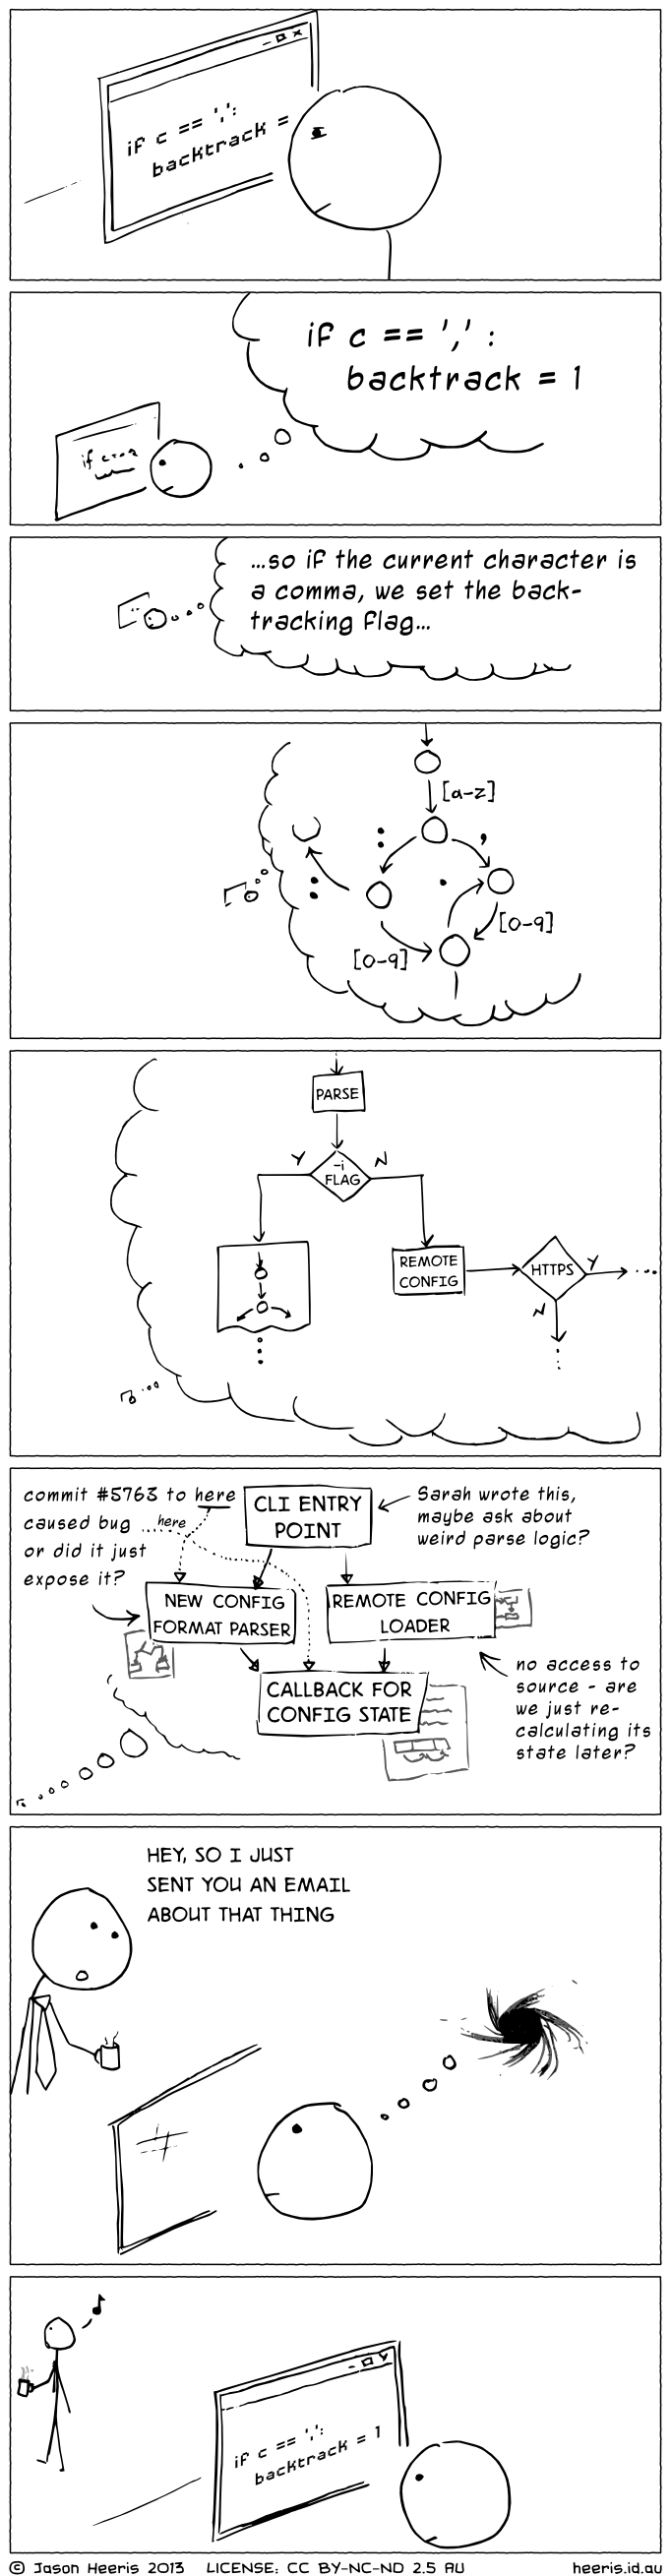 This Is Why You Shouldn't Interrupt a Programmer - The Slightly Disgruntled Scientist